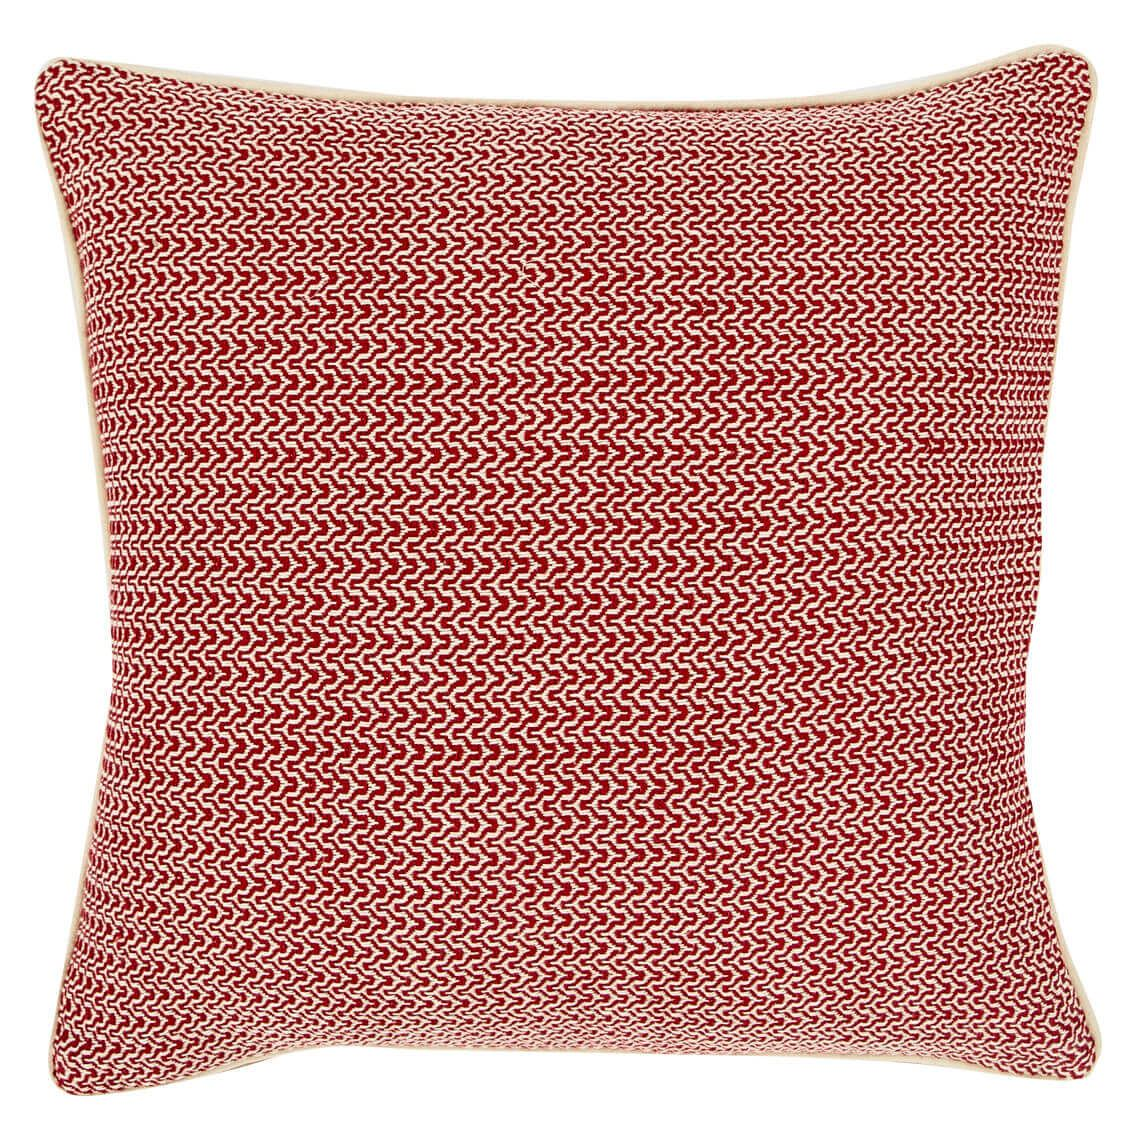 Breah Cushion Size W 50cm x D 50cm x H 8cm in Red Freedom